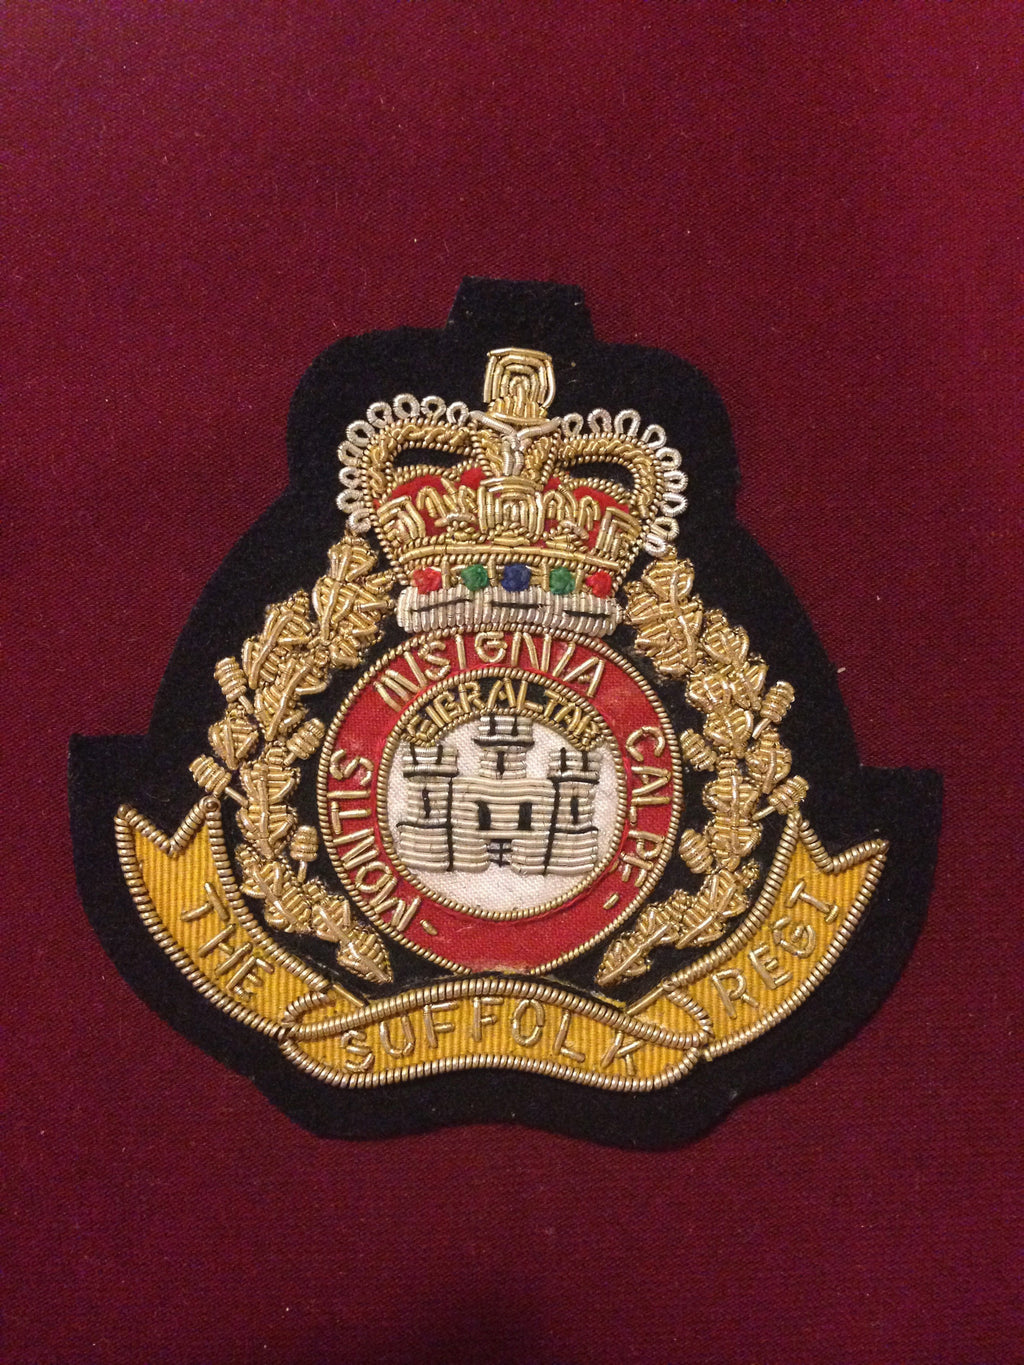 The Suffolk Regiment Blazer badge